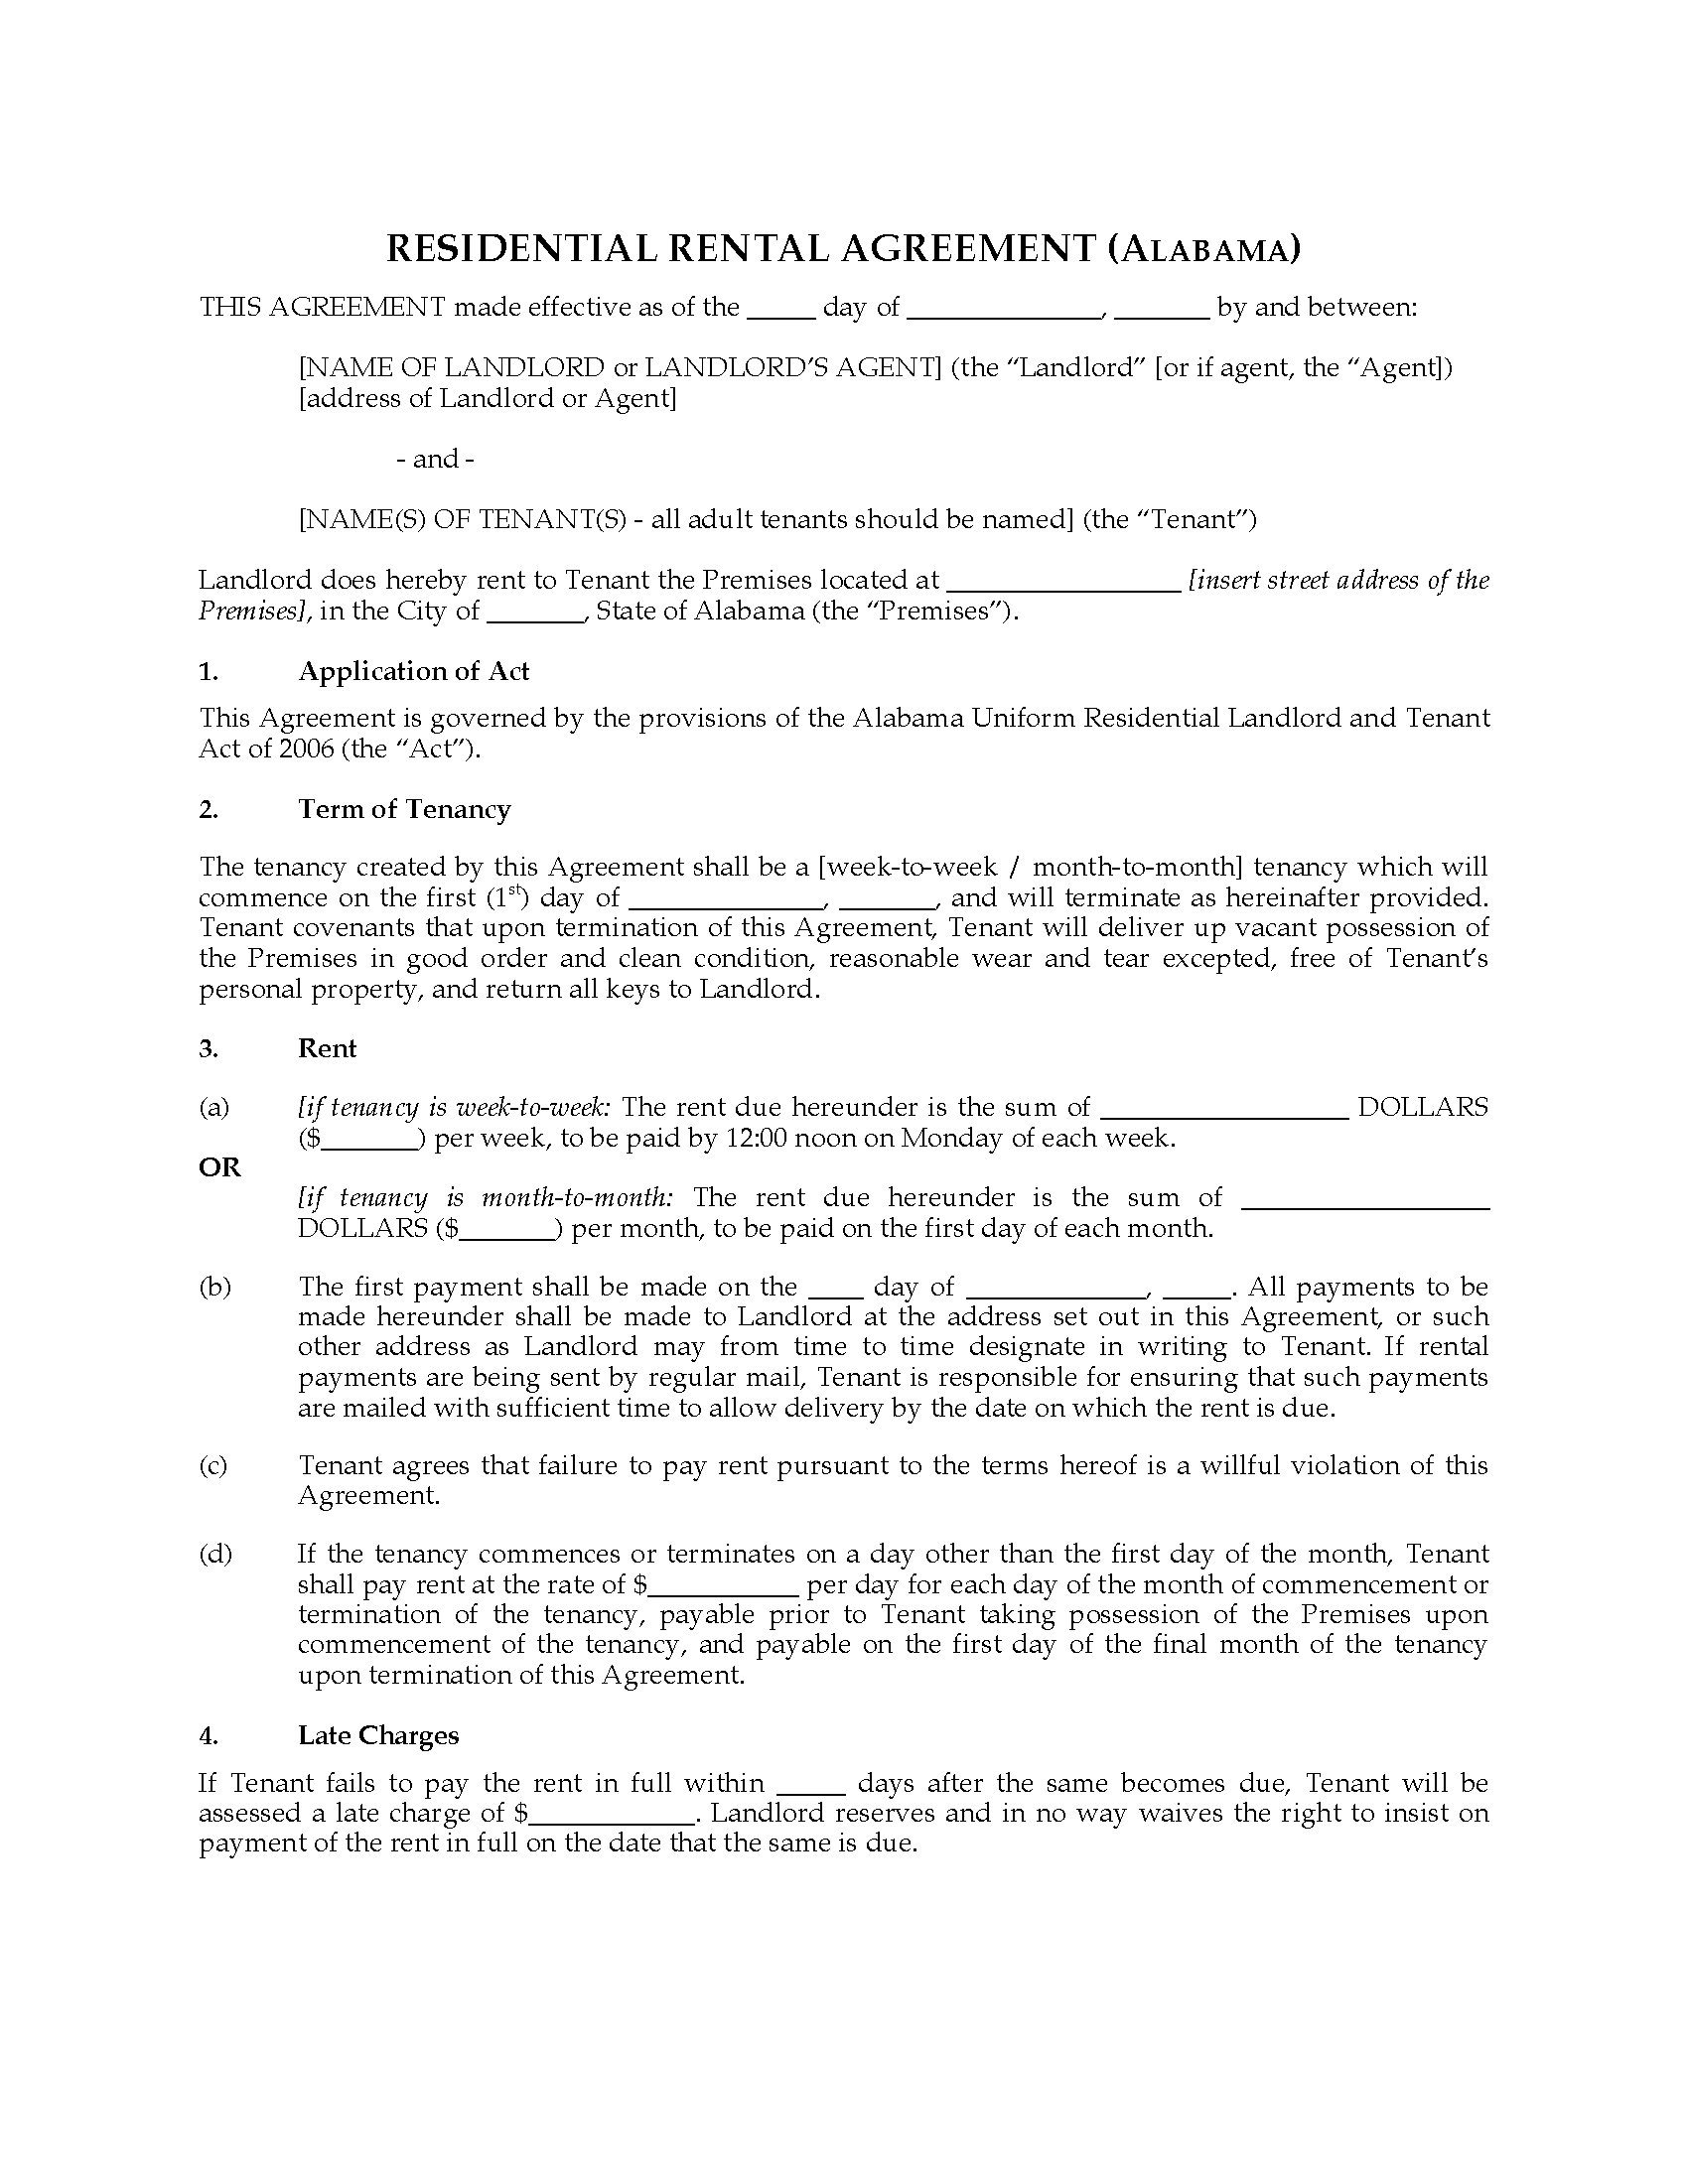 Alabama Rental Agreement For Residential Premises Legal Forms And